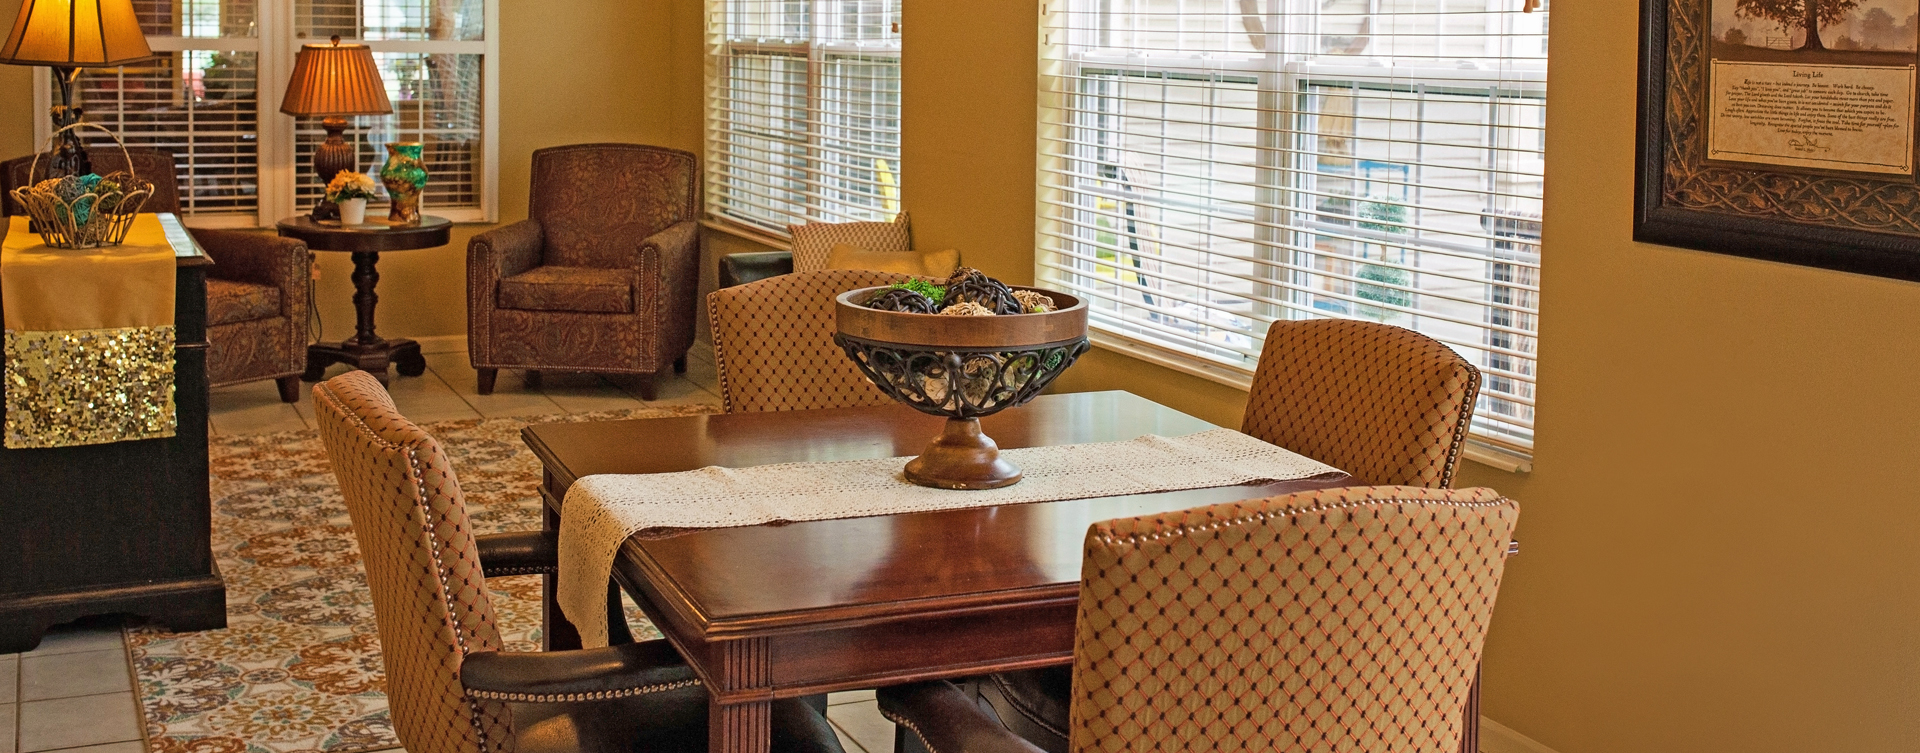 Enjoy the view of the outdoors from the sunroom at Bickford of Cedar Falls